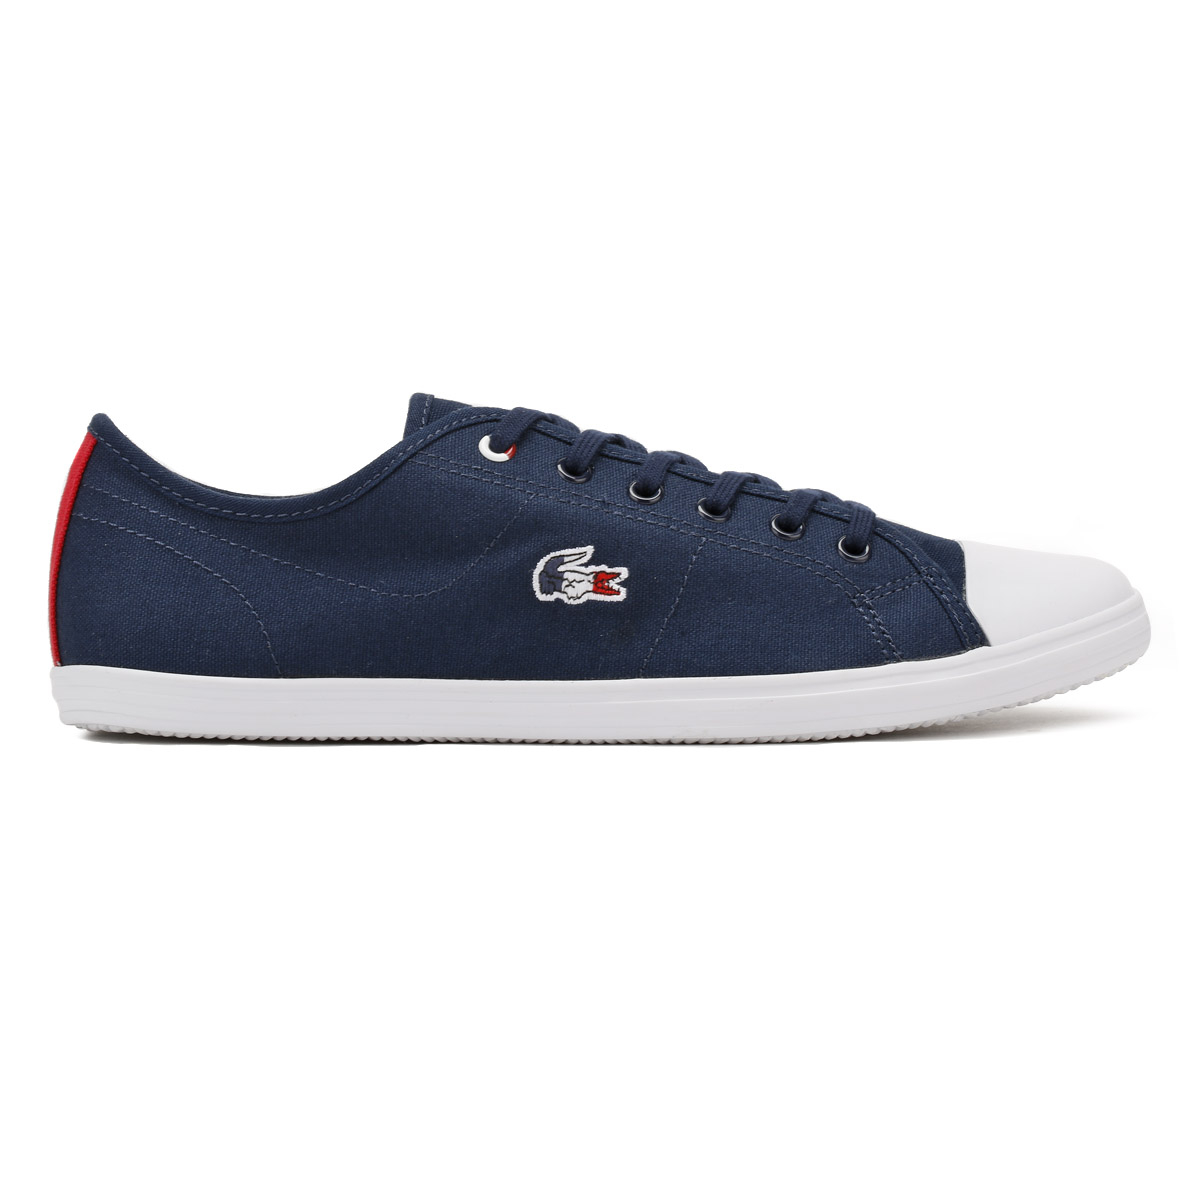 079fd2635 Lacoste Womens Trainers Navy or White Ziane 317 1 Ladies Sport ...